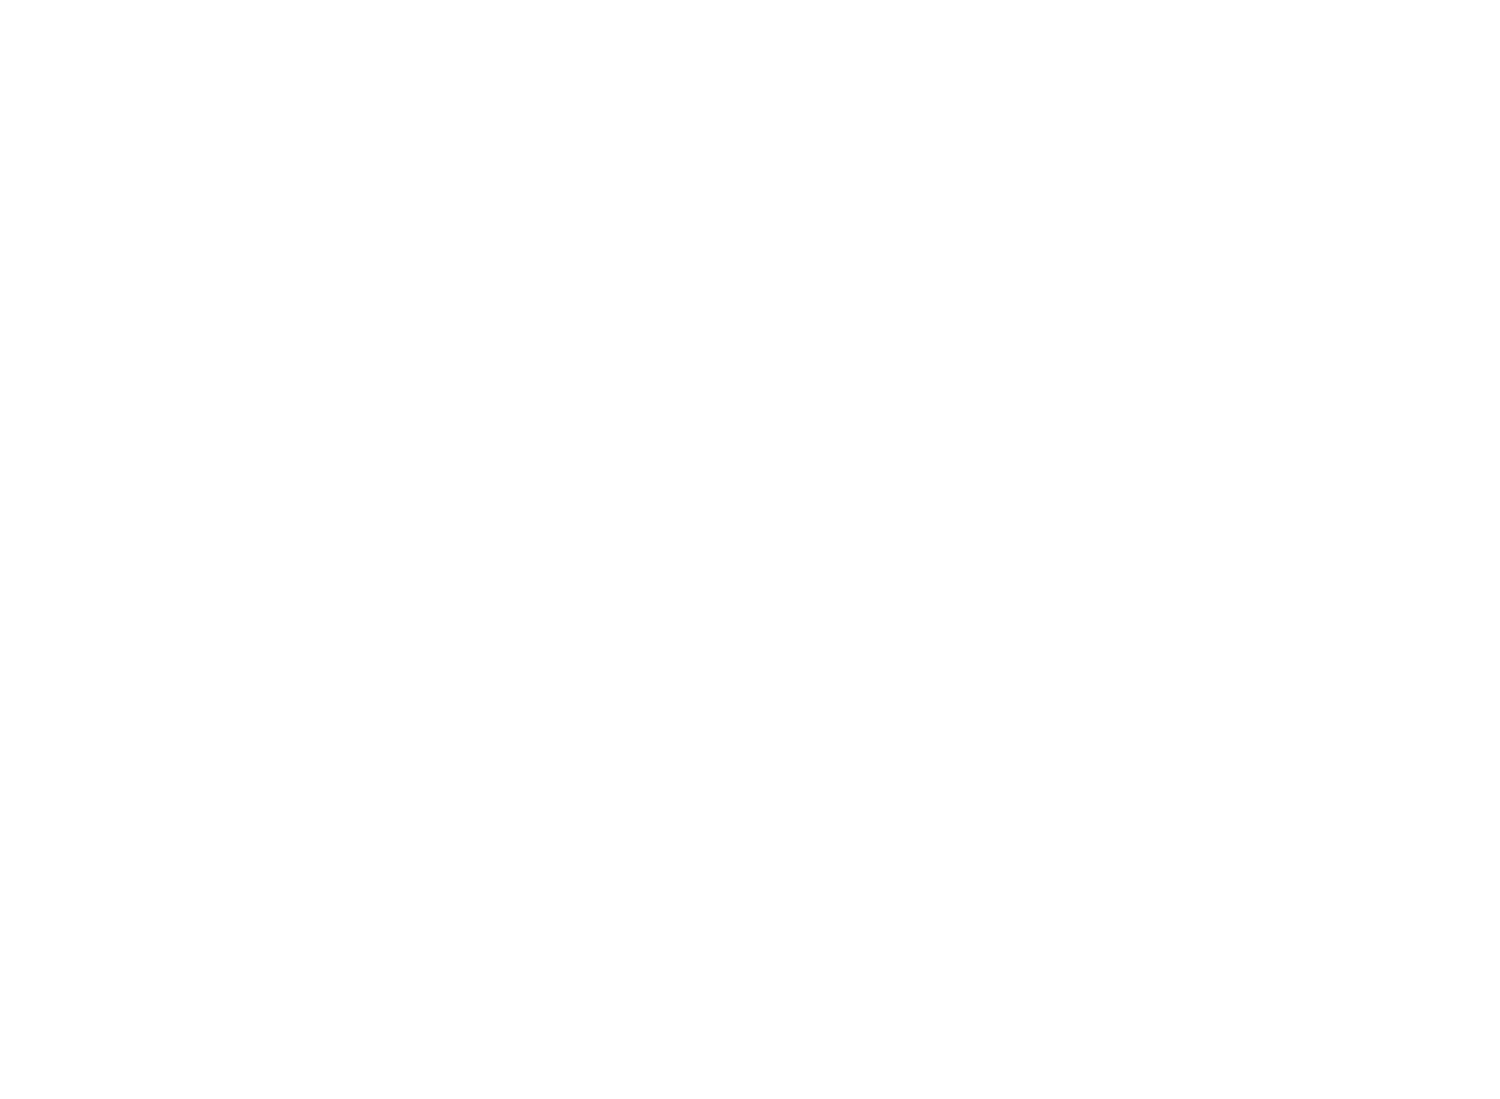 Craftsman Editorial